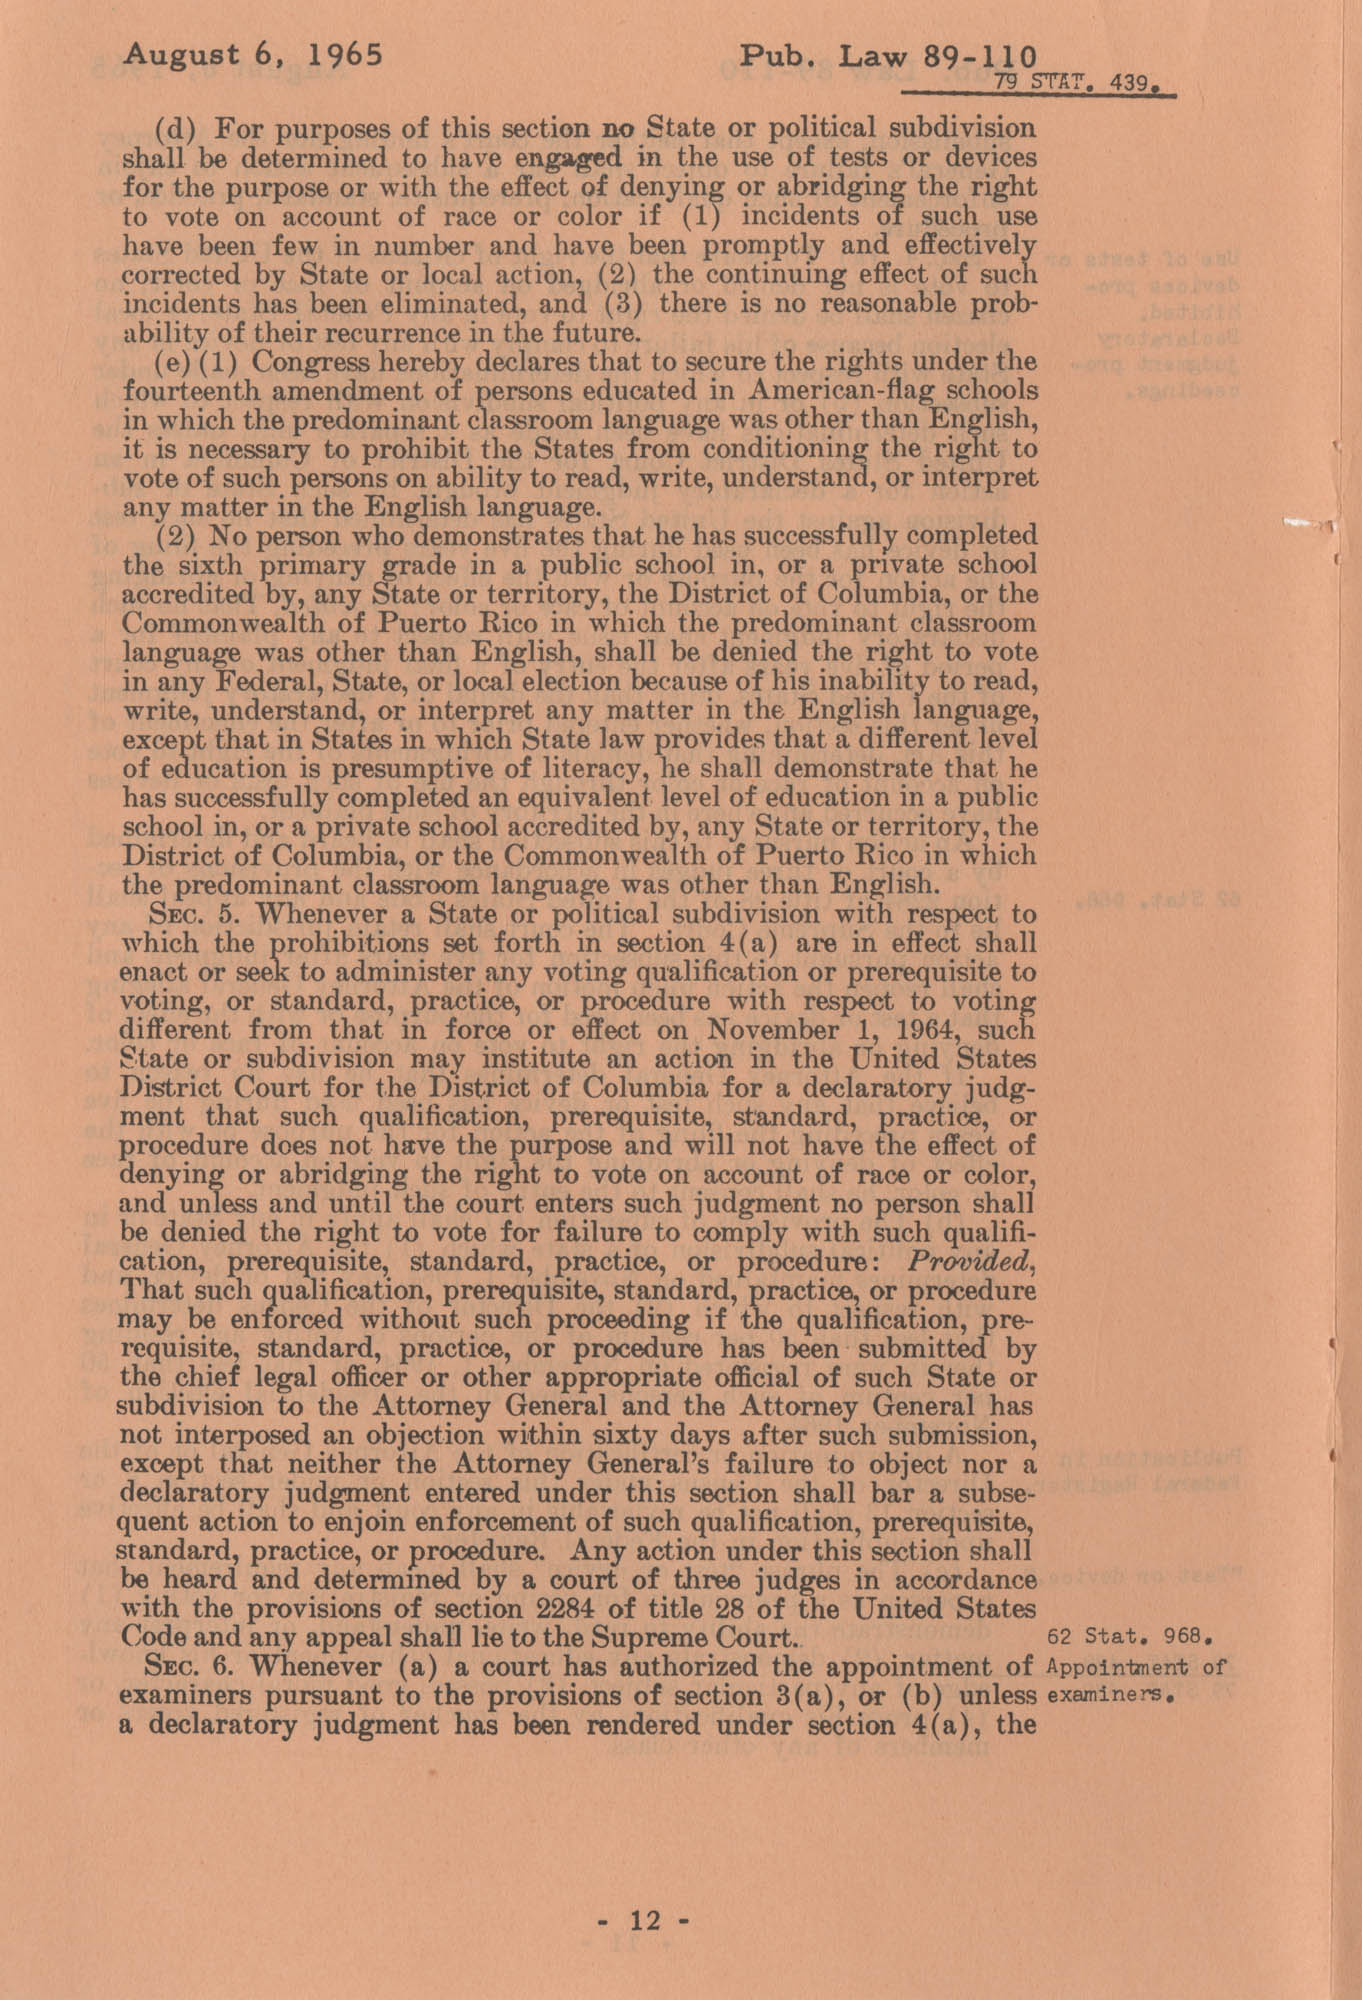 The Voting Rights Act of 1965, Page 12